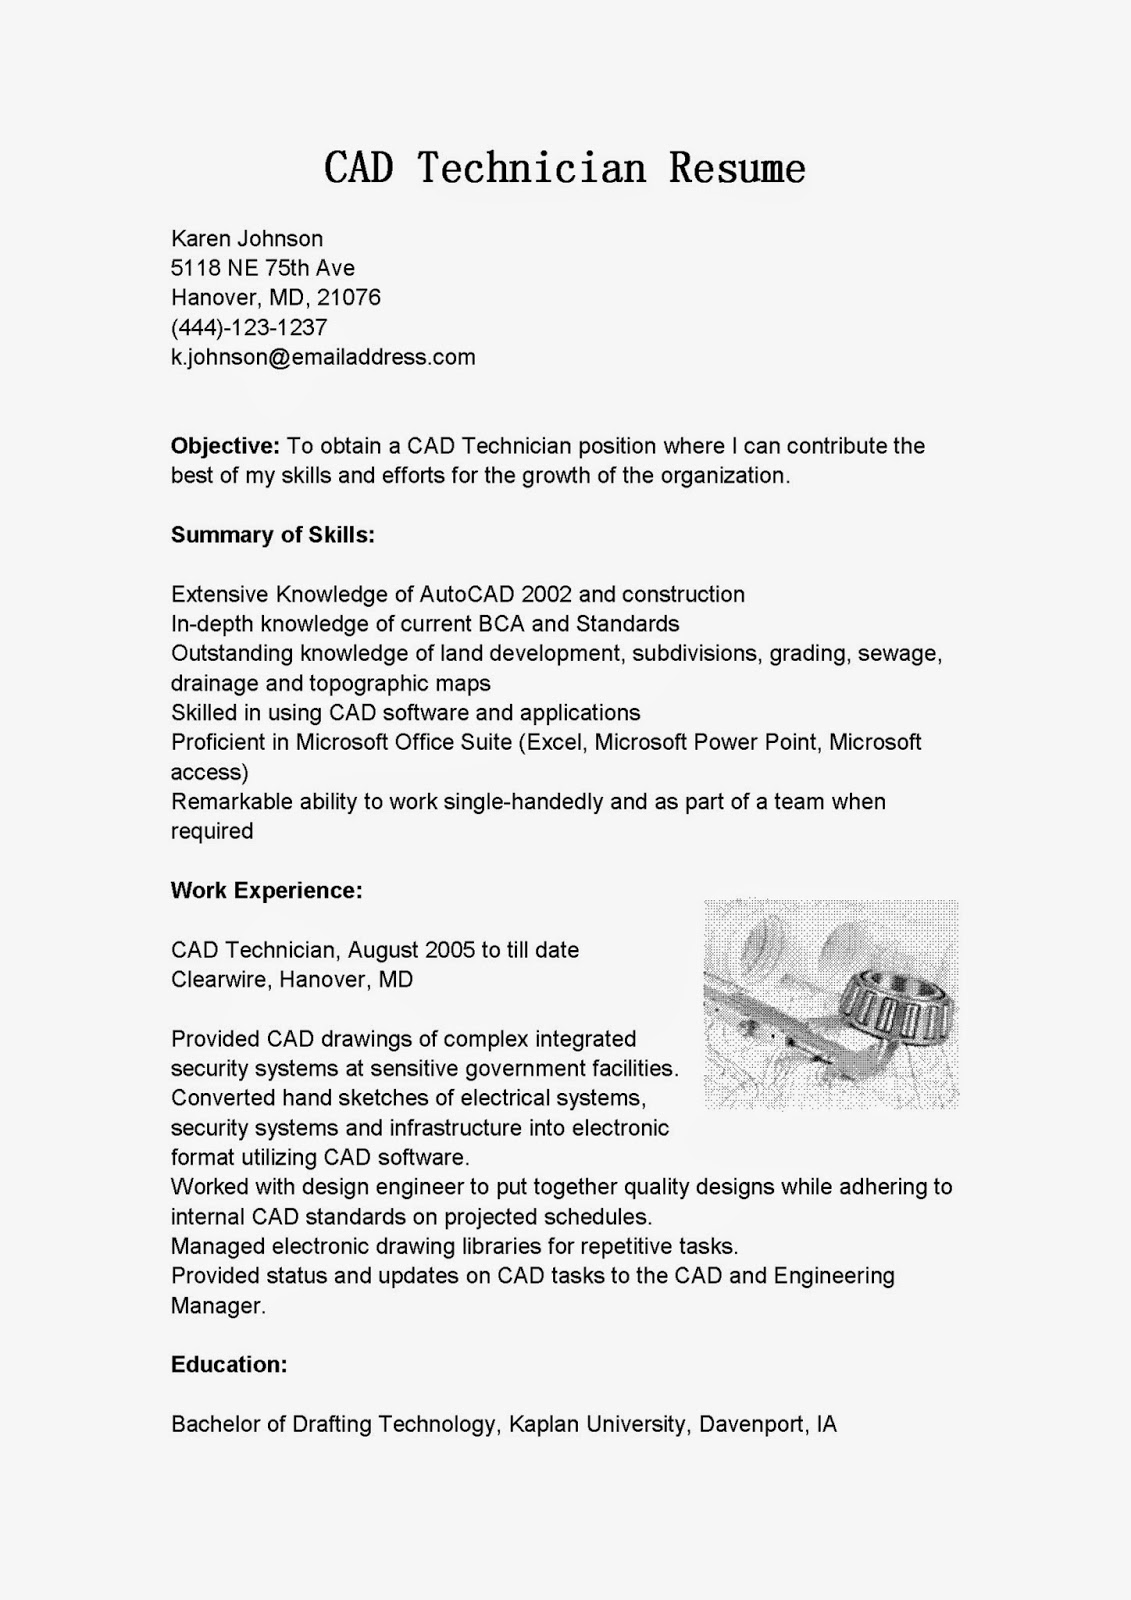 Resume Samples Cad Technician Resume Sample